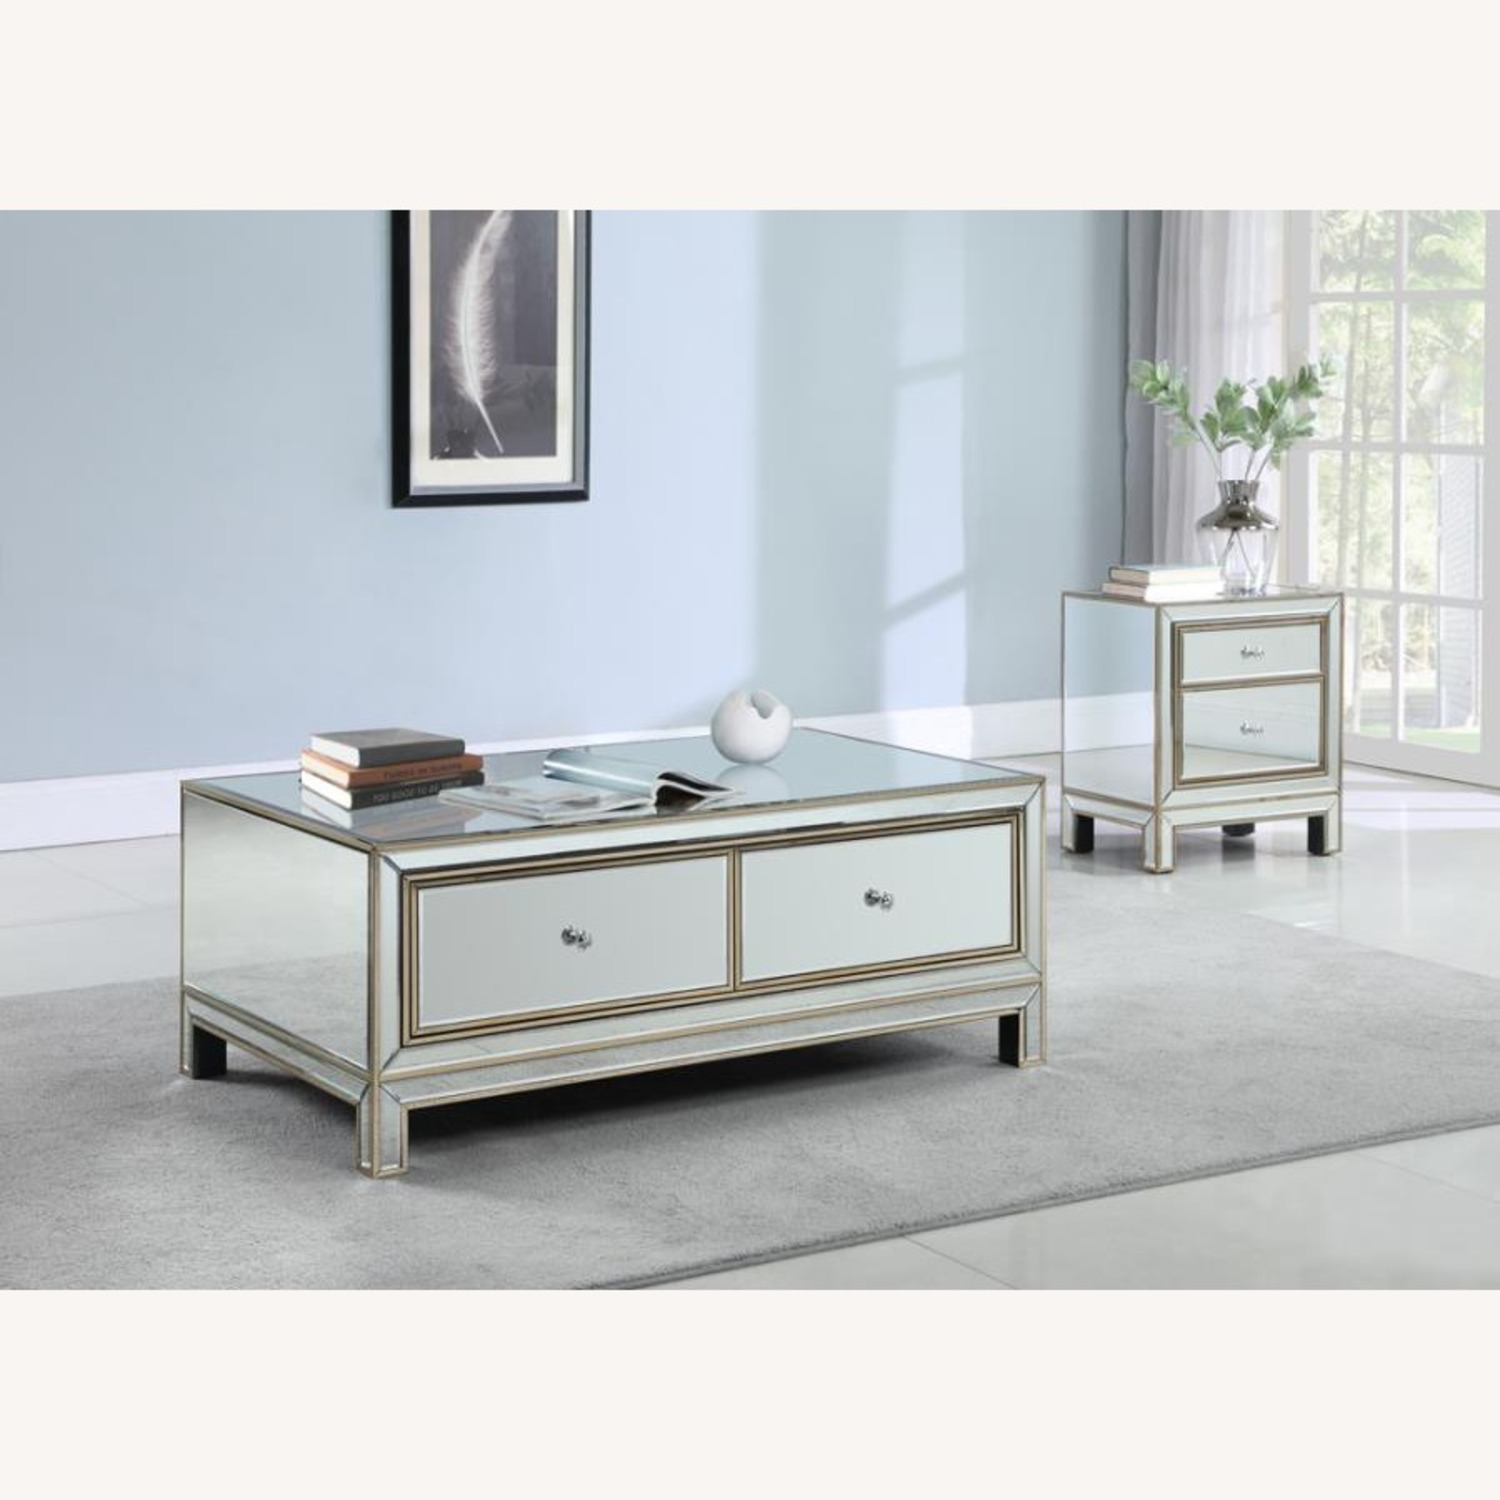 End Table In Silver & Champagne Finish - image-3